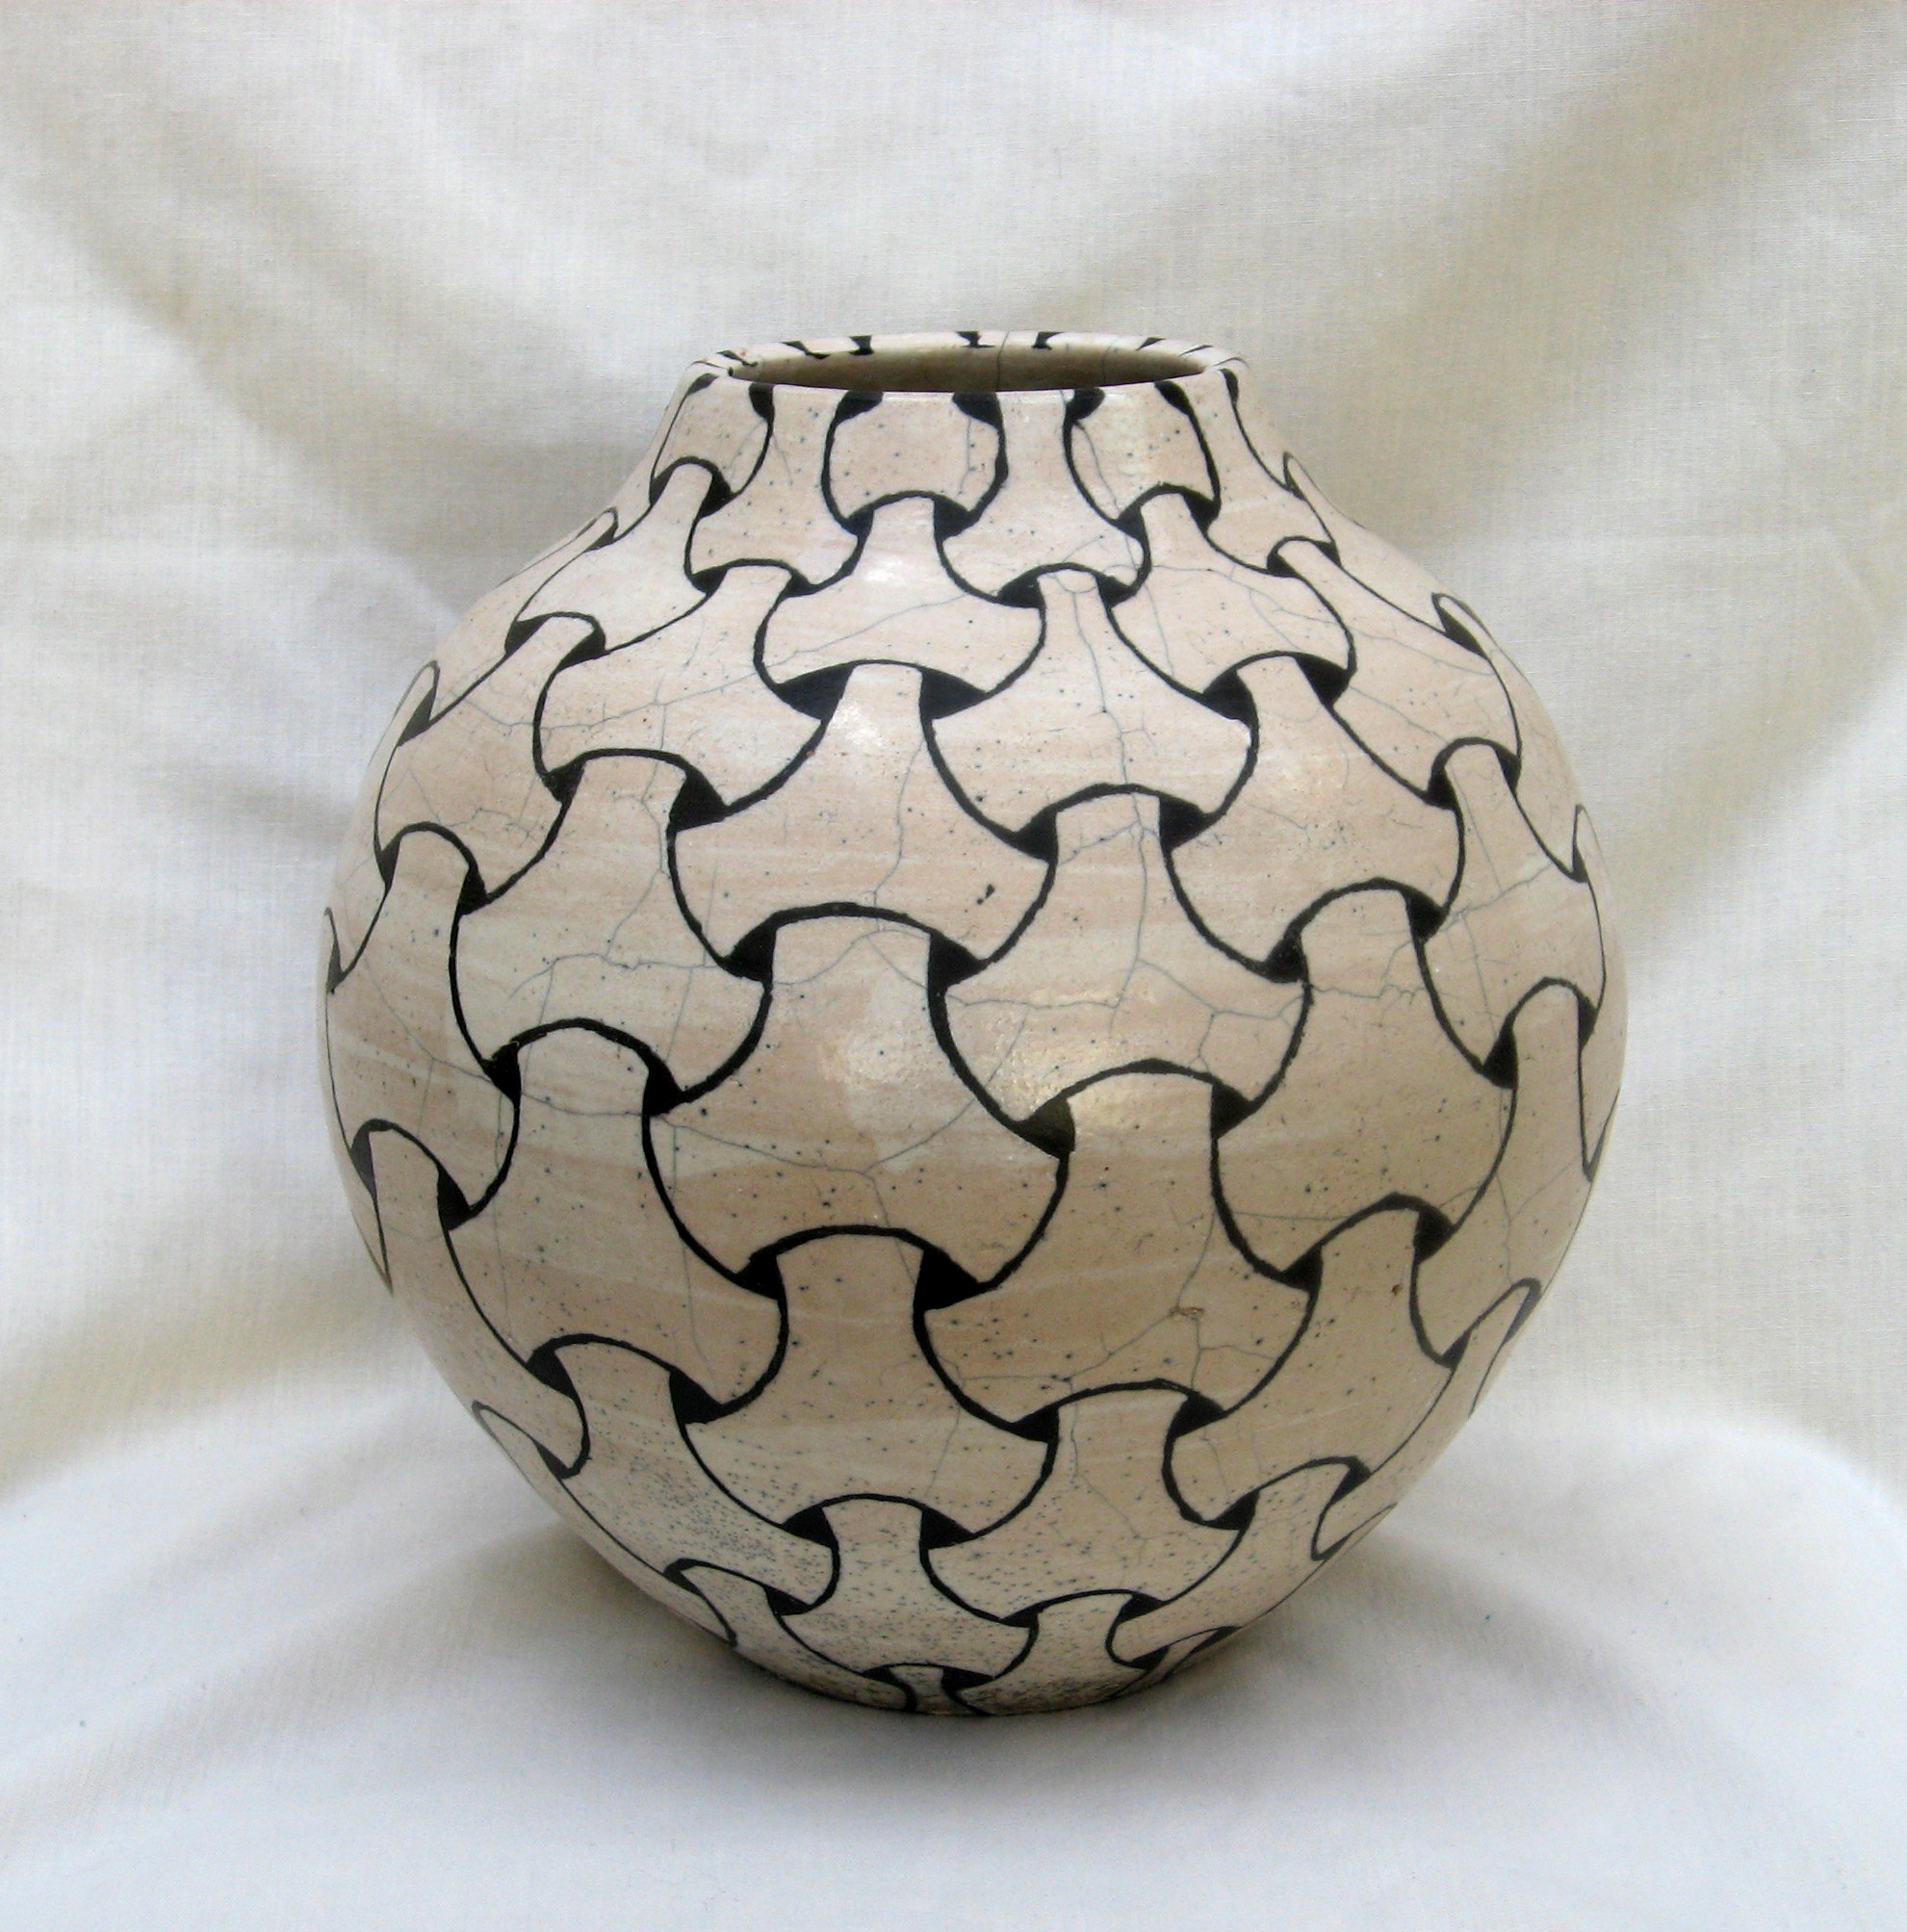 Black & White  tiling pattern on raku pot by Terry Hagiwara